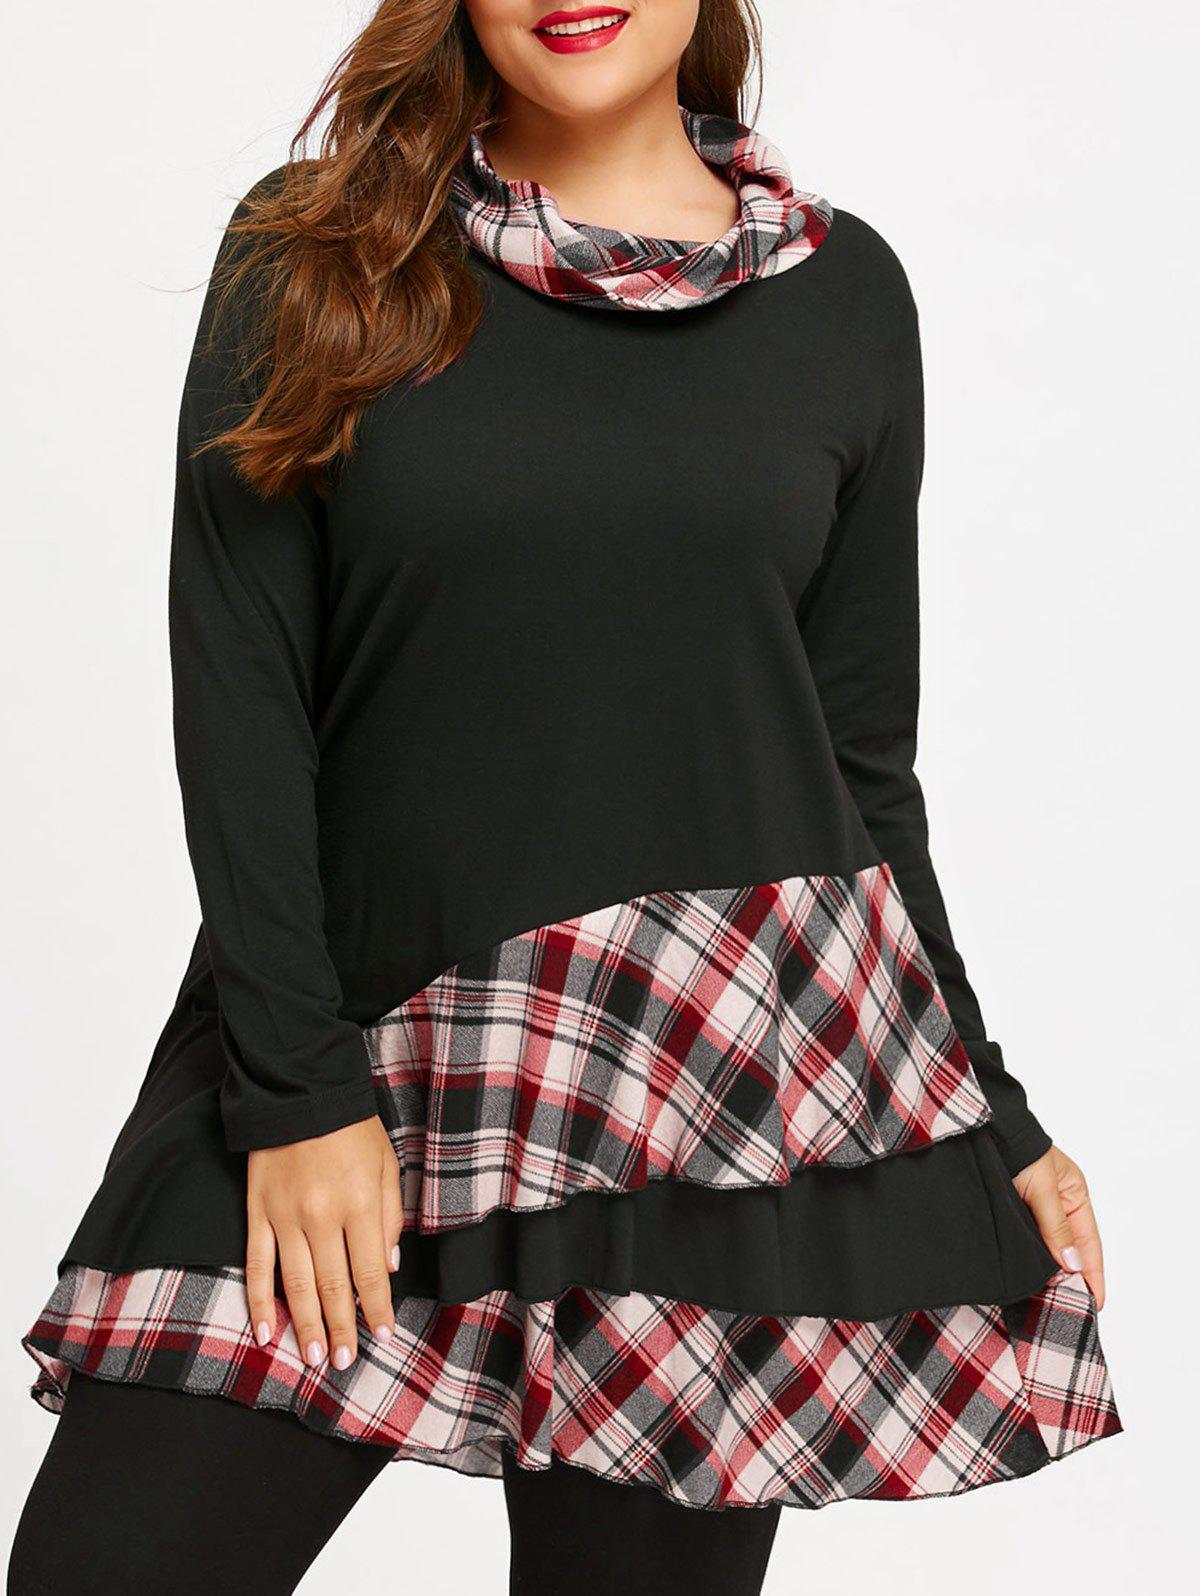 Plus Size Cowl Neck Plaid Panel Flounce Tunic Top marled plaid cowl neck top